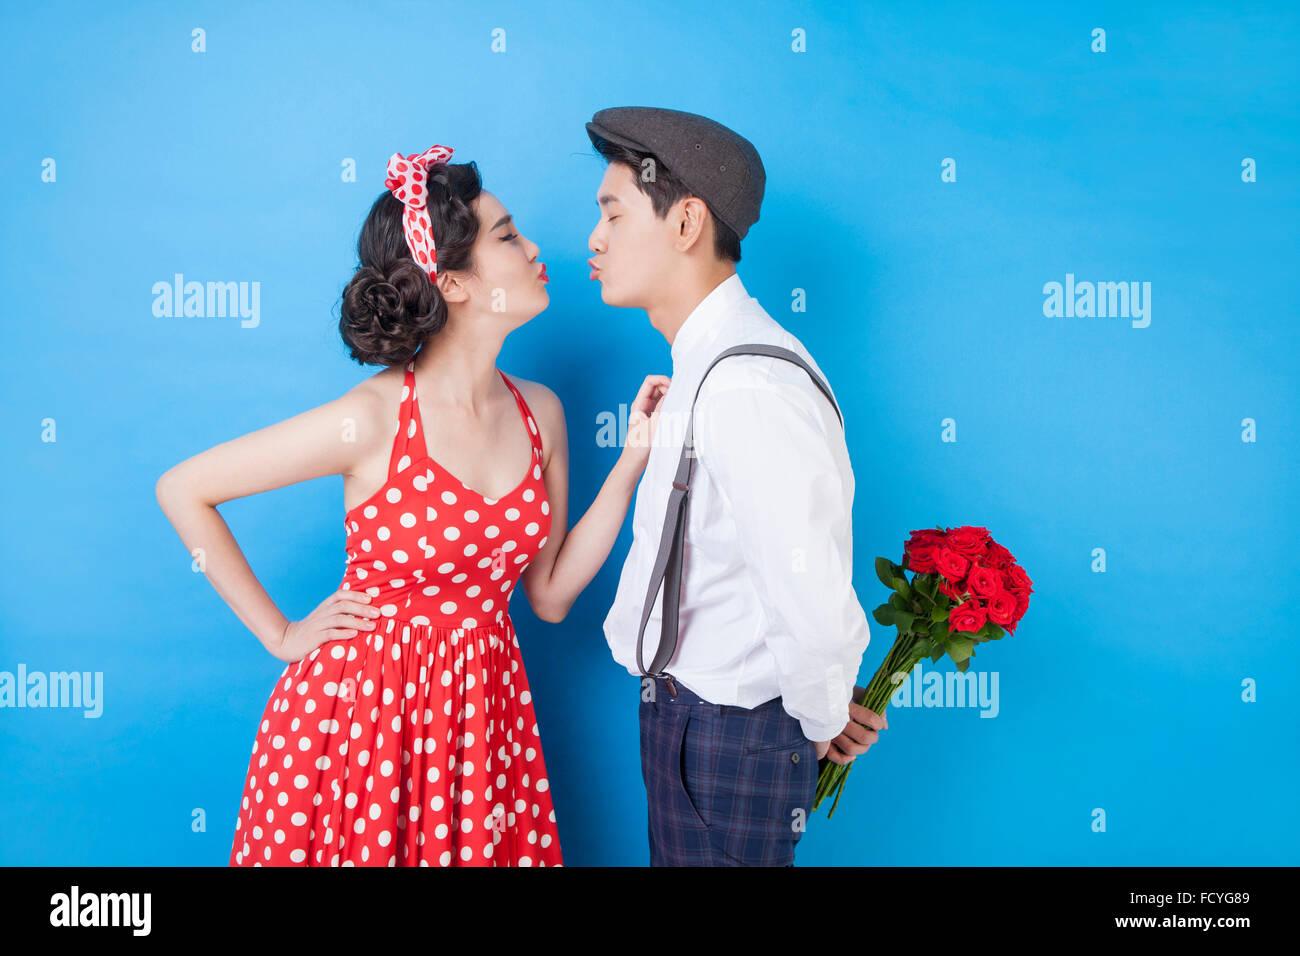 Couple in retro style fashion facing each other with the gesture of kissing and man holding roses behind his back